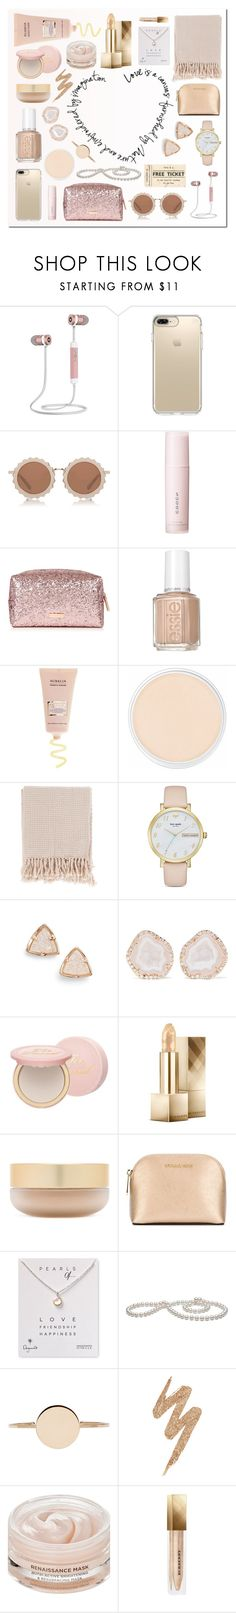 """""""neutral stocking"""" by milimacculloch ❤ liked on Polyvore featuring Speck, House of Holland, SUQQU, Essie, Clinique, Surya, Kate Spade, Kendra Scott, Kimberly McDonald and Too Faced Cosmetics"""